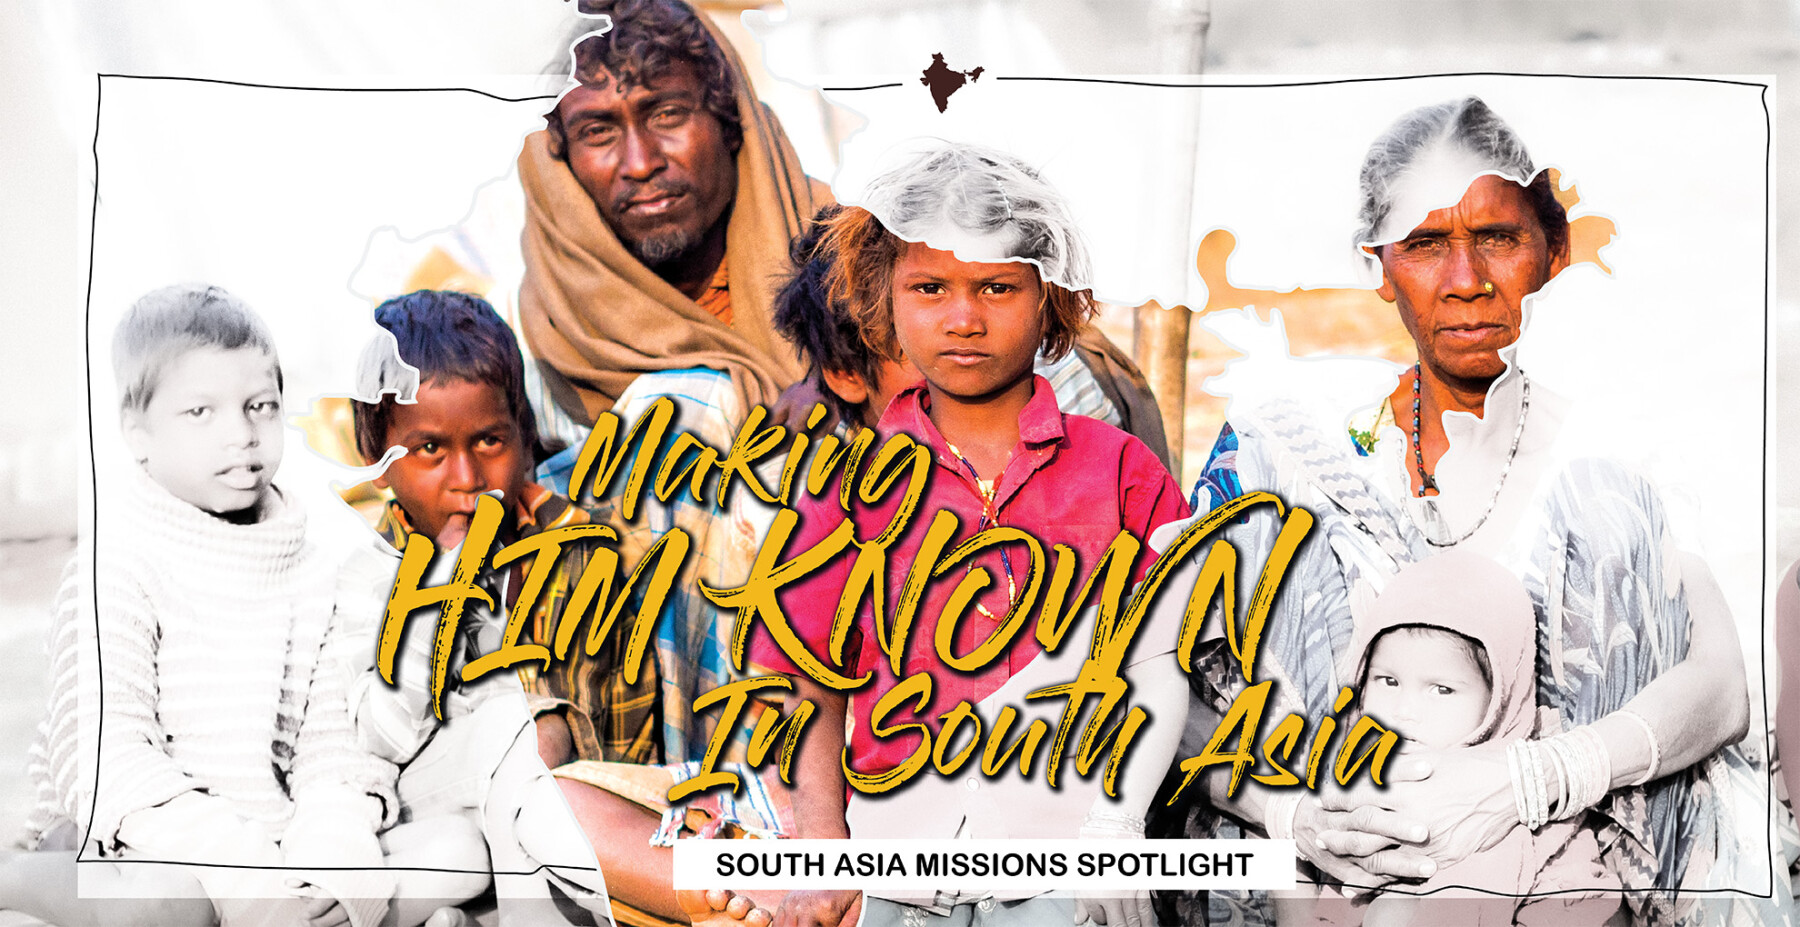 South Asia Missions Spotlight